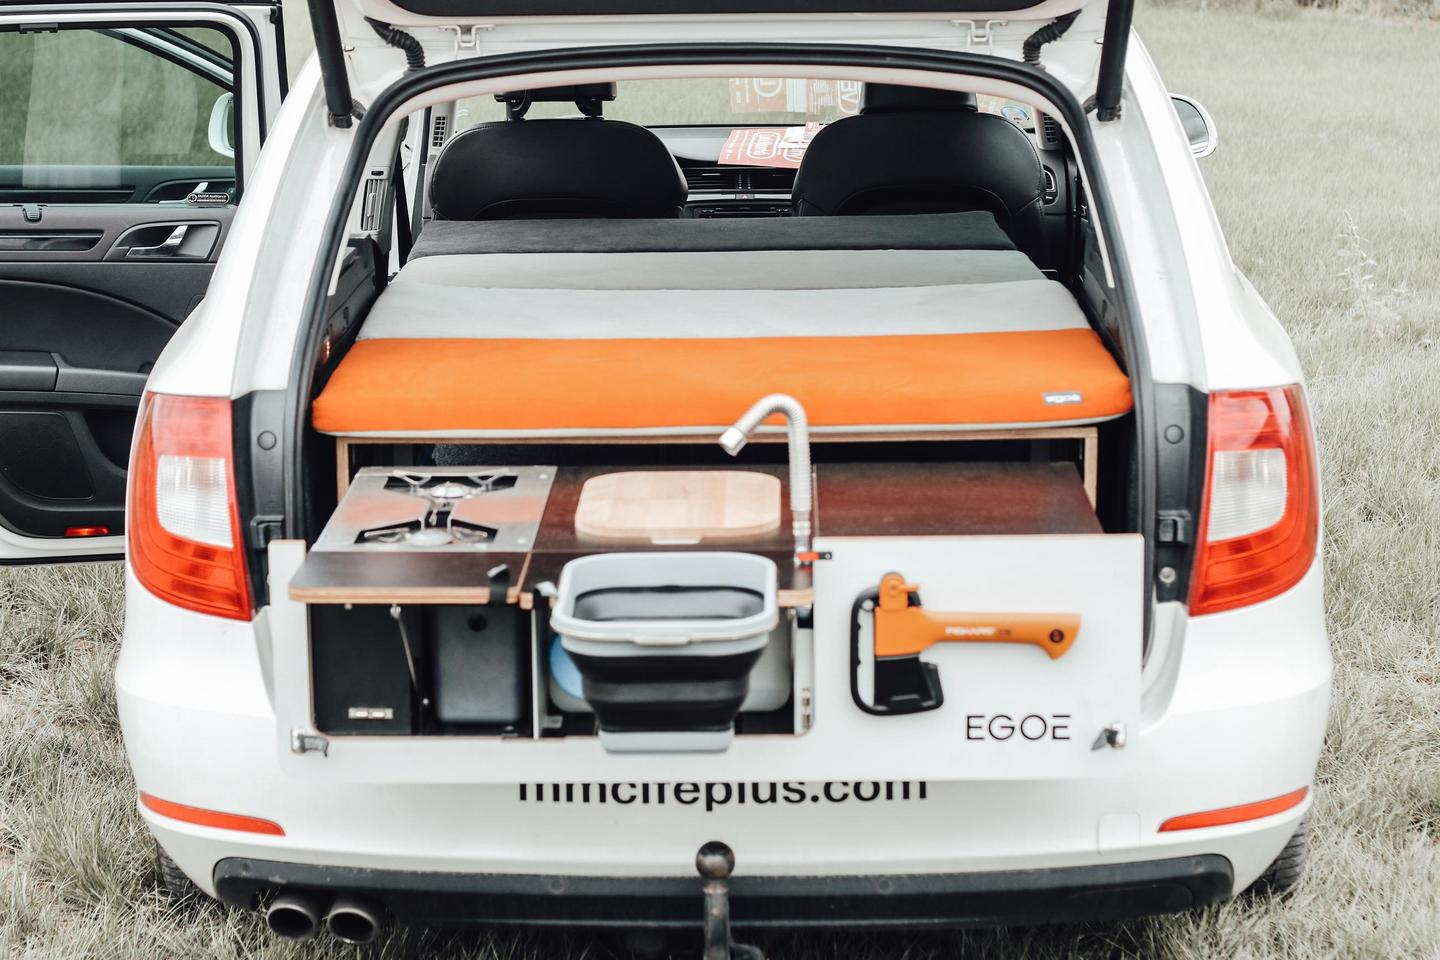 The Egoé Nestbox Camper is the smallest camper box in the line, designed for smaller vehicles like crossovers and station wagons